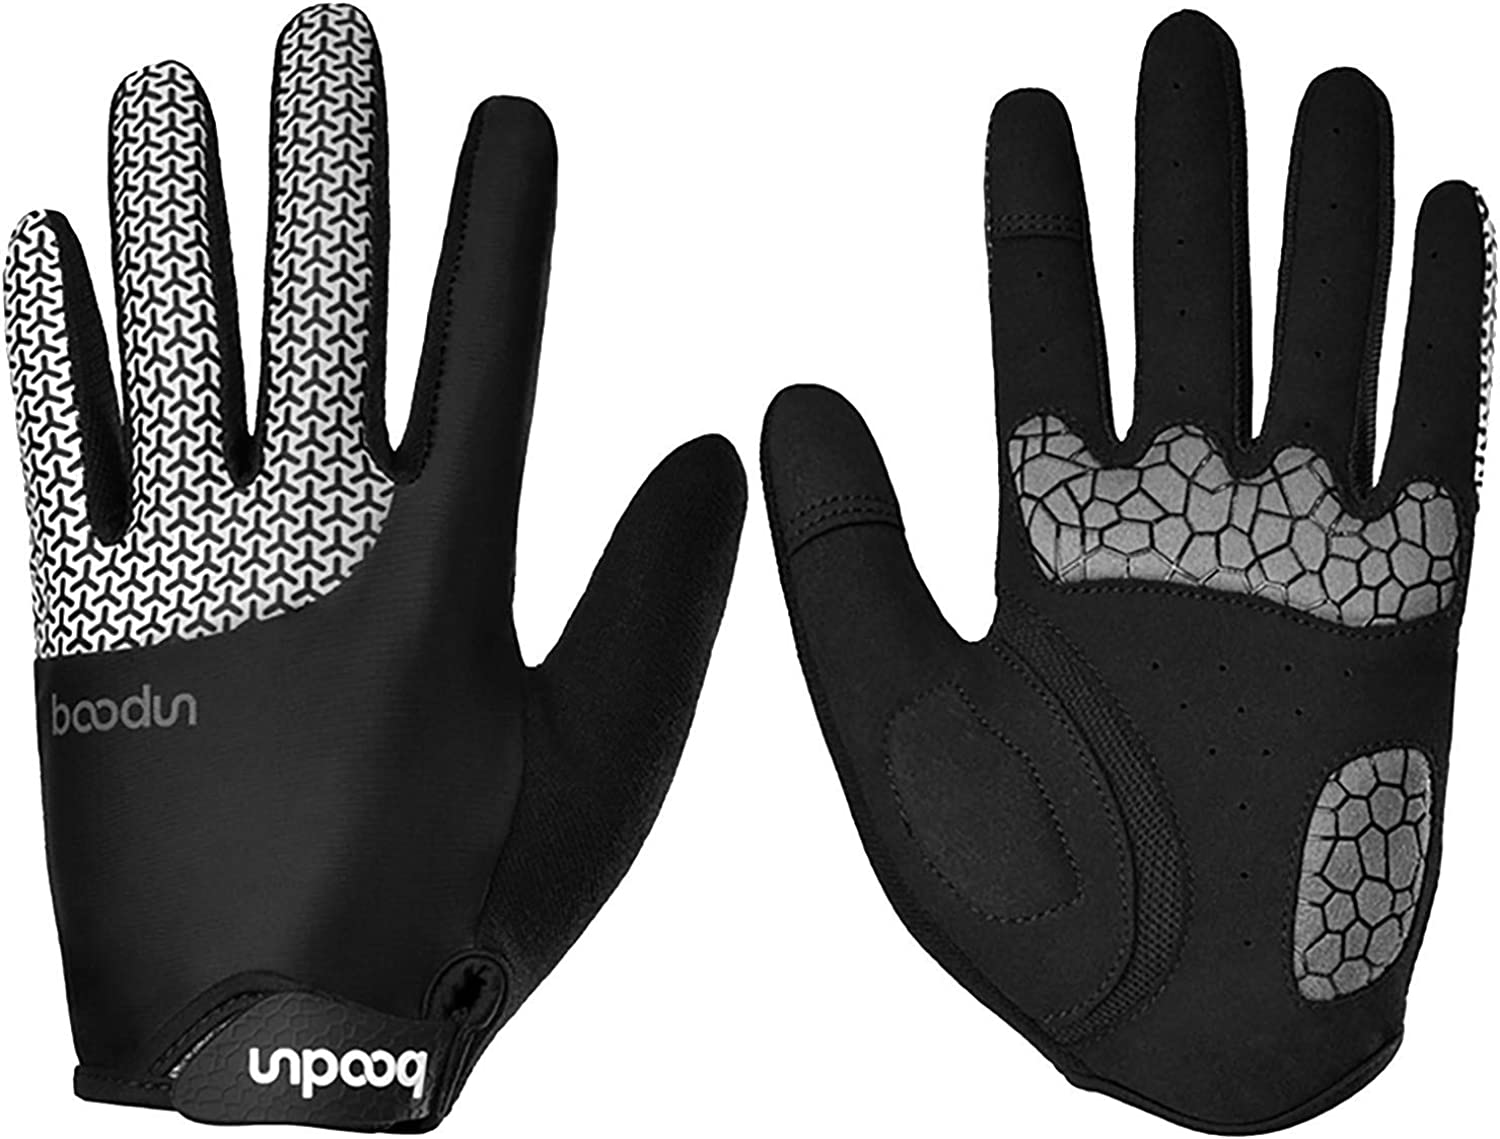 Boomboom Unisex Cycling Gloves Sport Full Finger Palm Padded for Bike Moto Racing Hiking Camping Gym Outdoor Sports